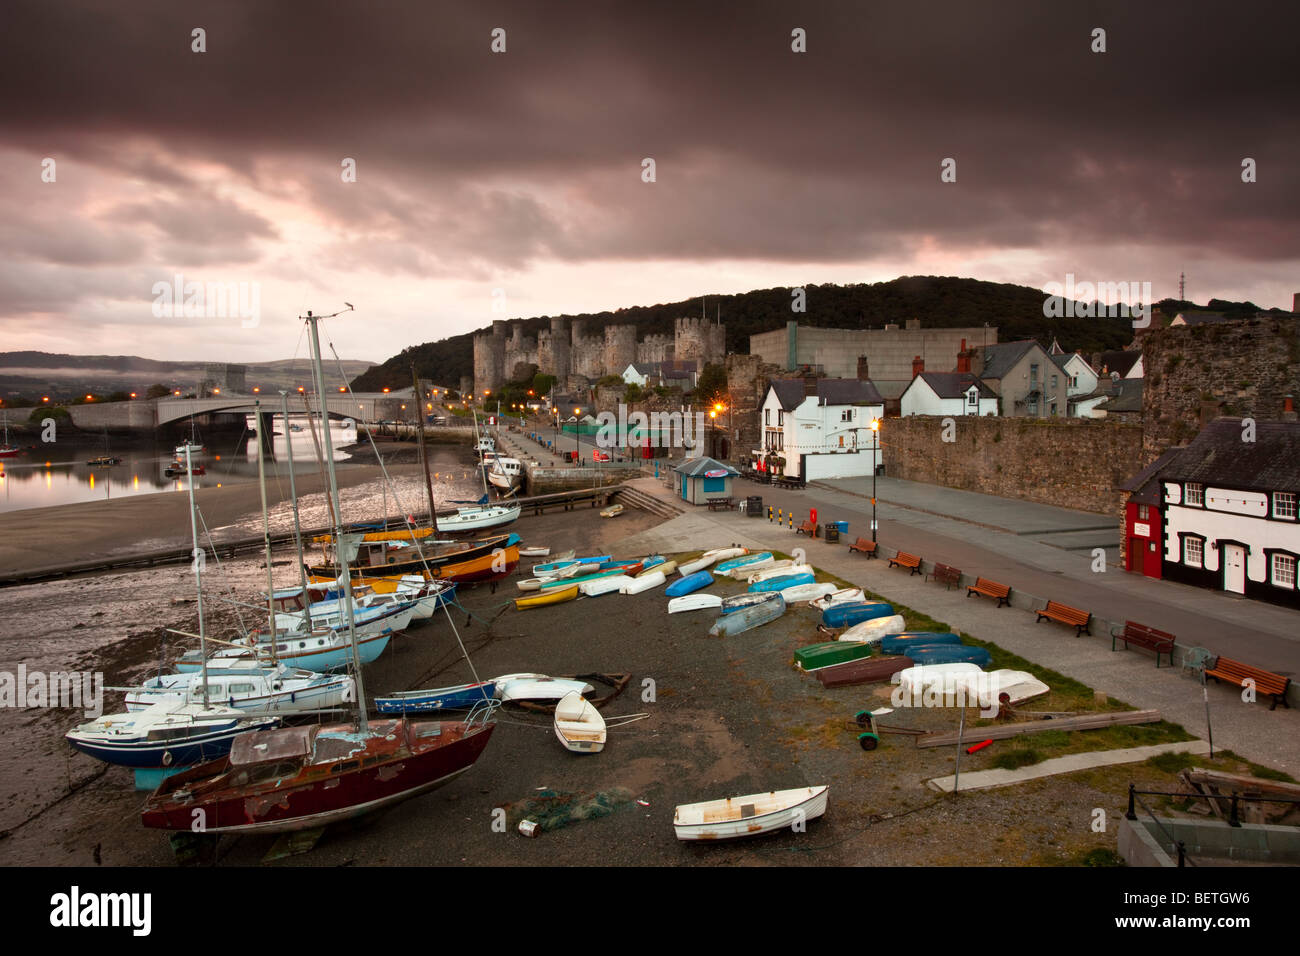 Harbour scene at Conwy in North Wales before the morning light. - Stock Image